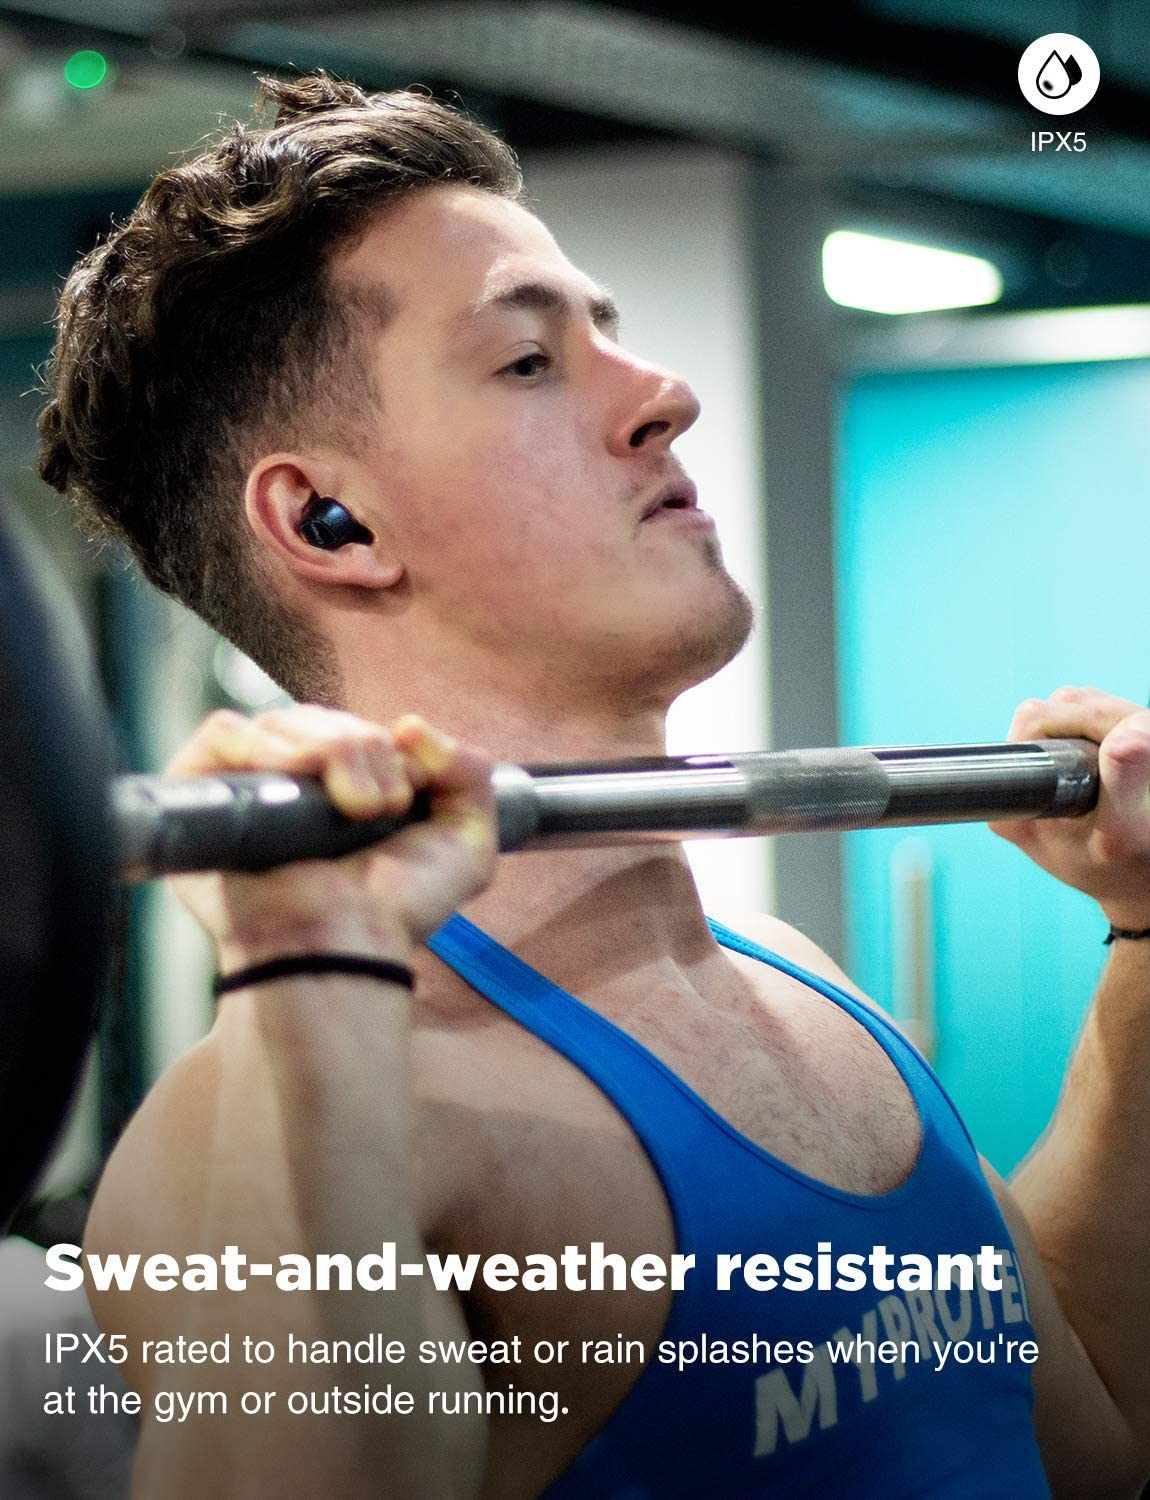 cowin KY02 Bluetooth Wireless Headphones Sport Earphones Earbuds Built-in Mic Stereo Calls Extra Bass Touch Control 36H Playtime for Workout Black